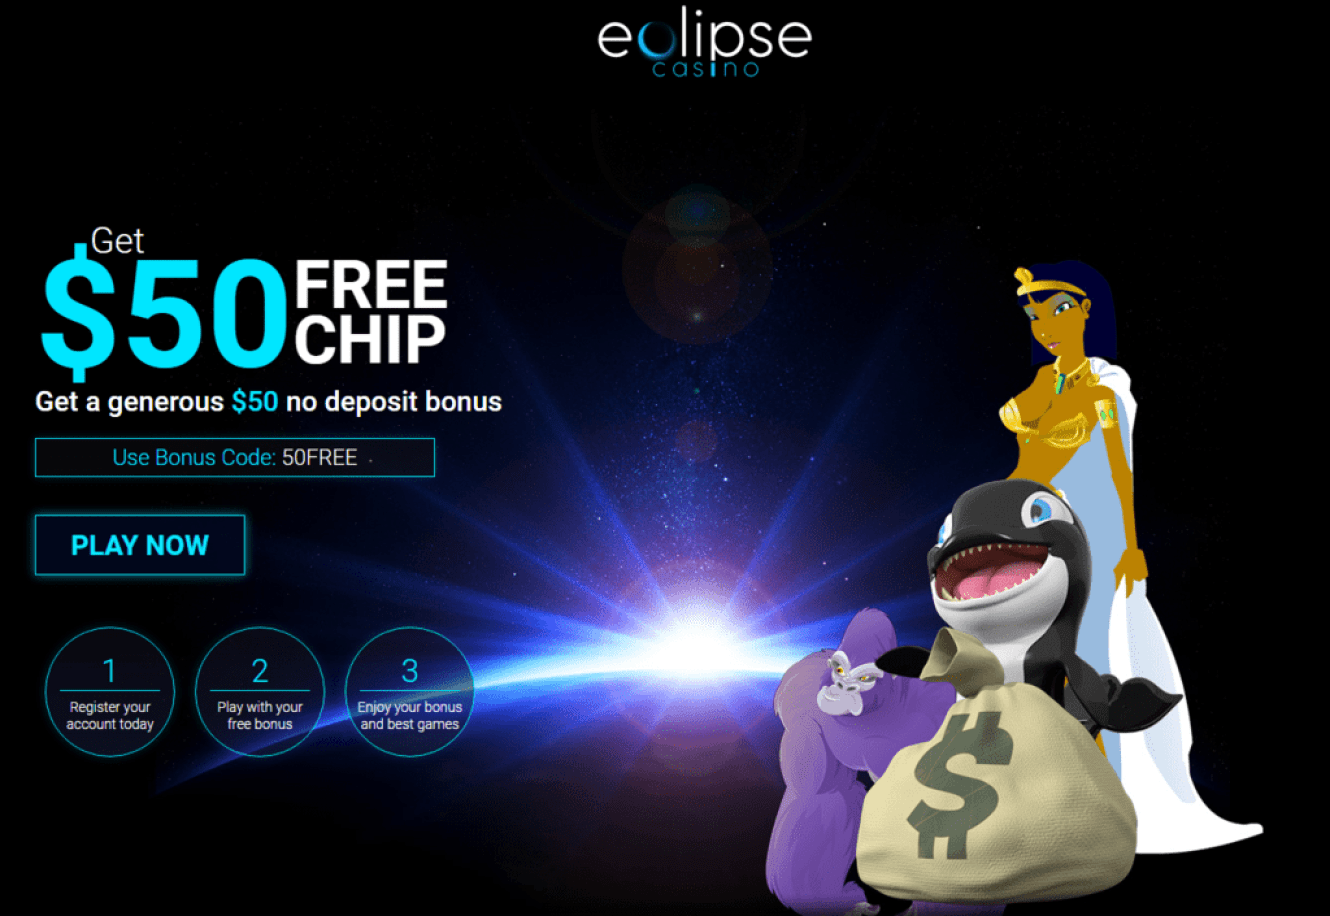 Eclipse Casino $50 FREE Chip No Deposit Bonus